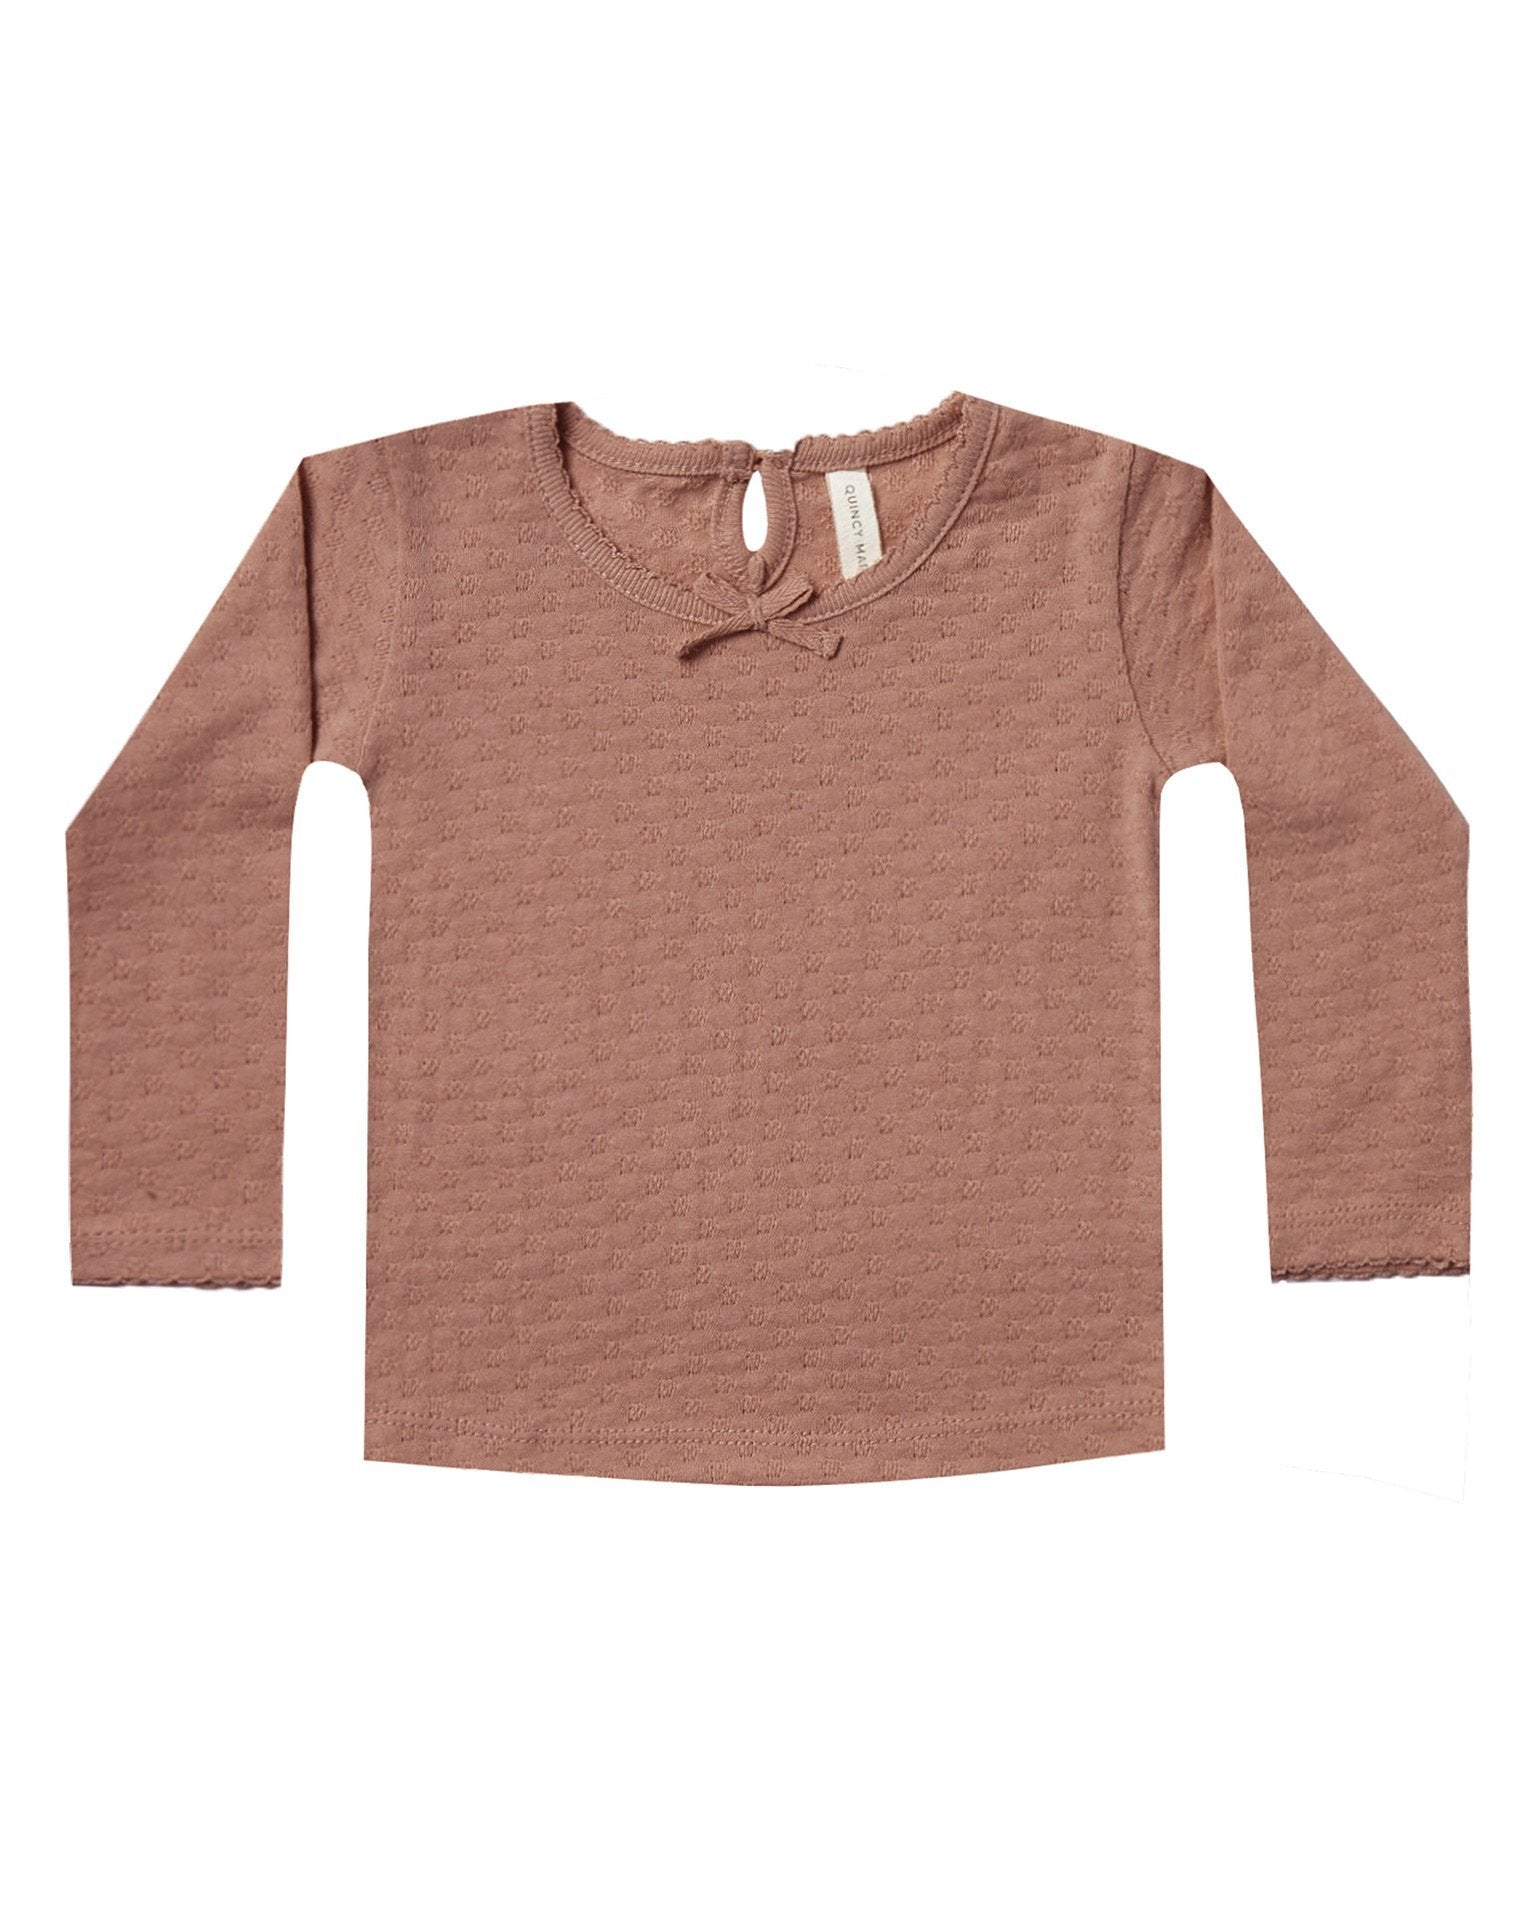 Little quincy mae baby girl longsleeve pointelle tee in clay